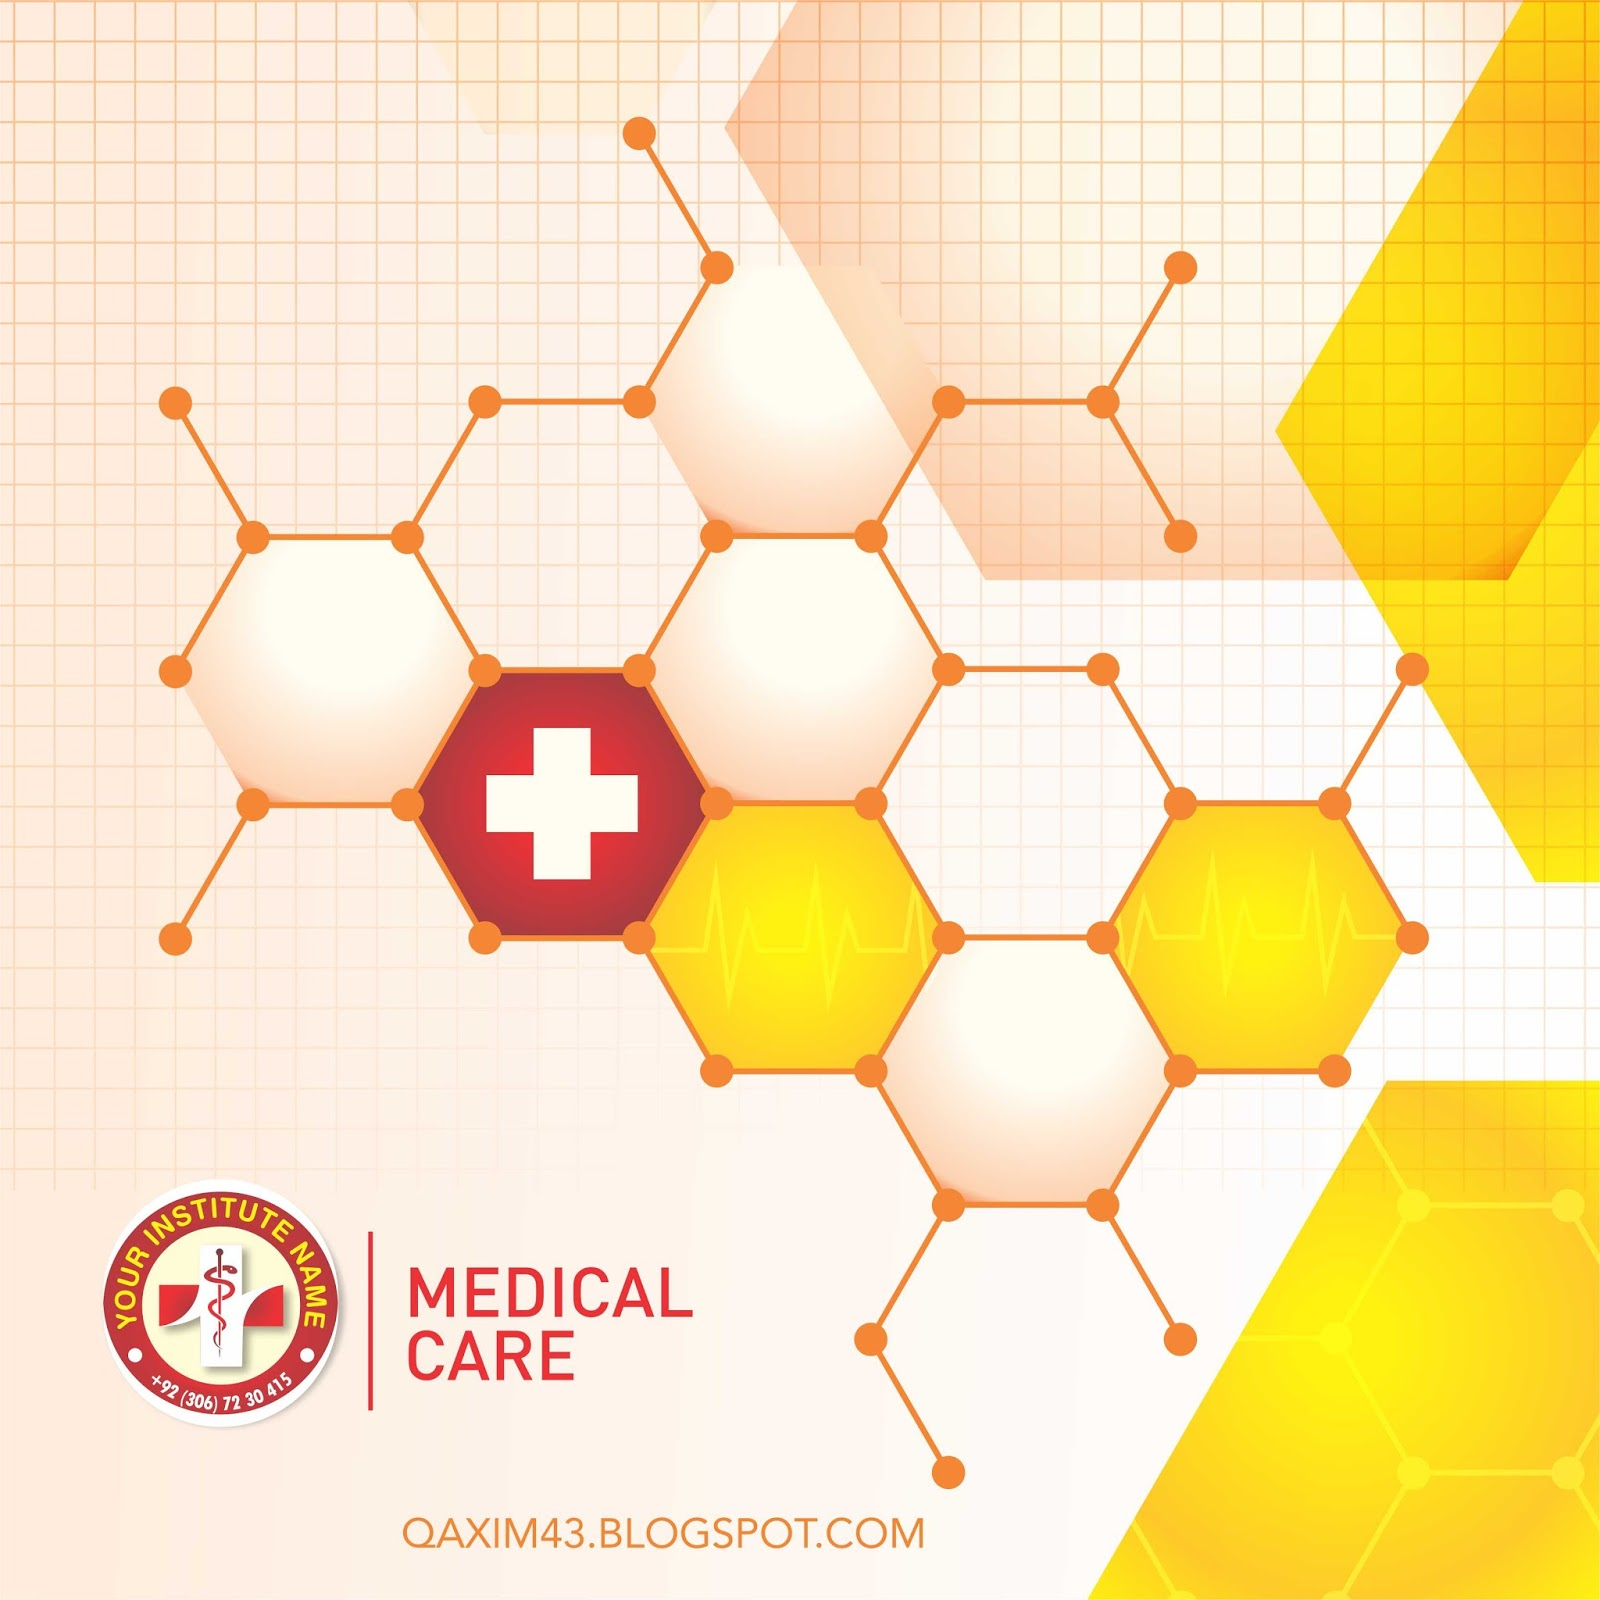 Medical Care Background With Professional Design Background In